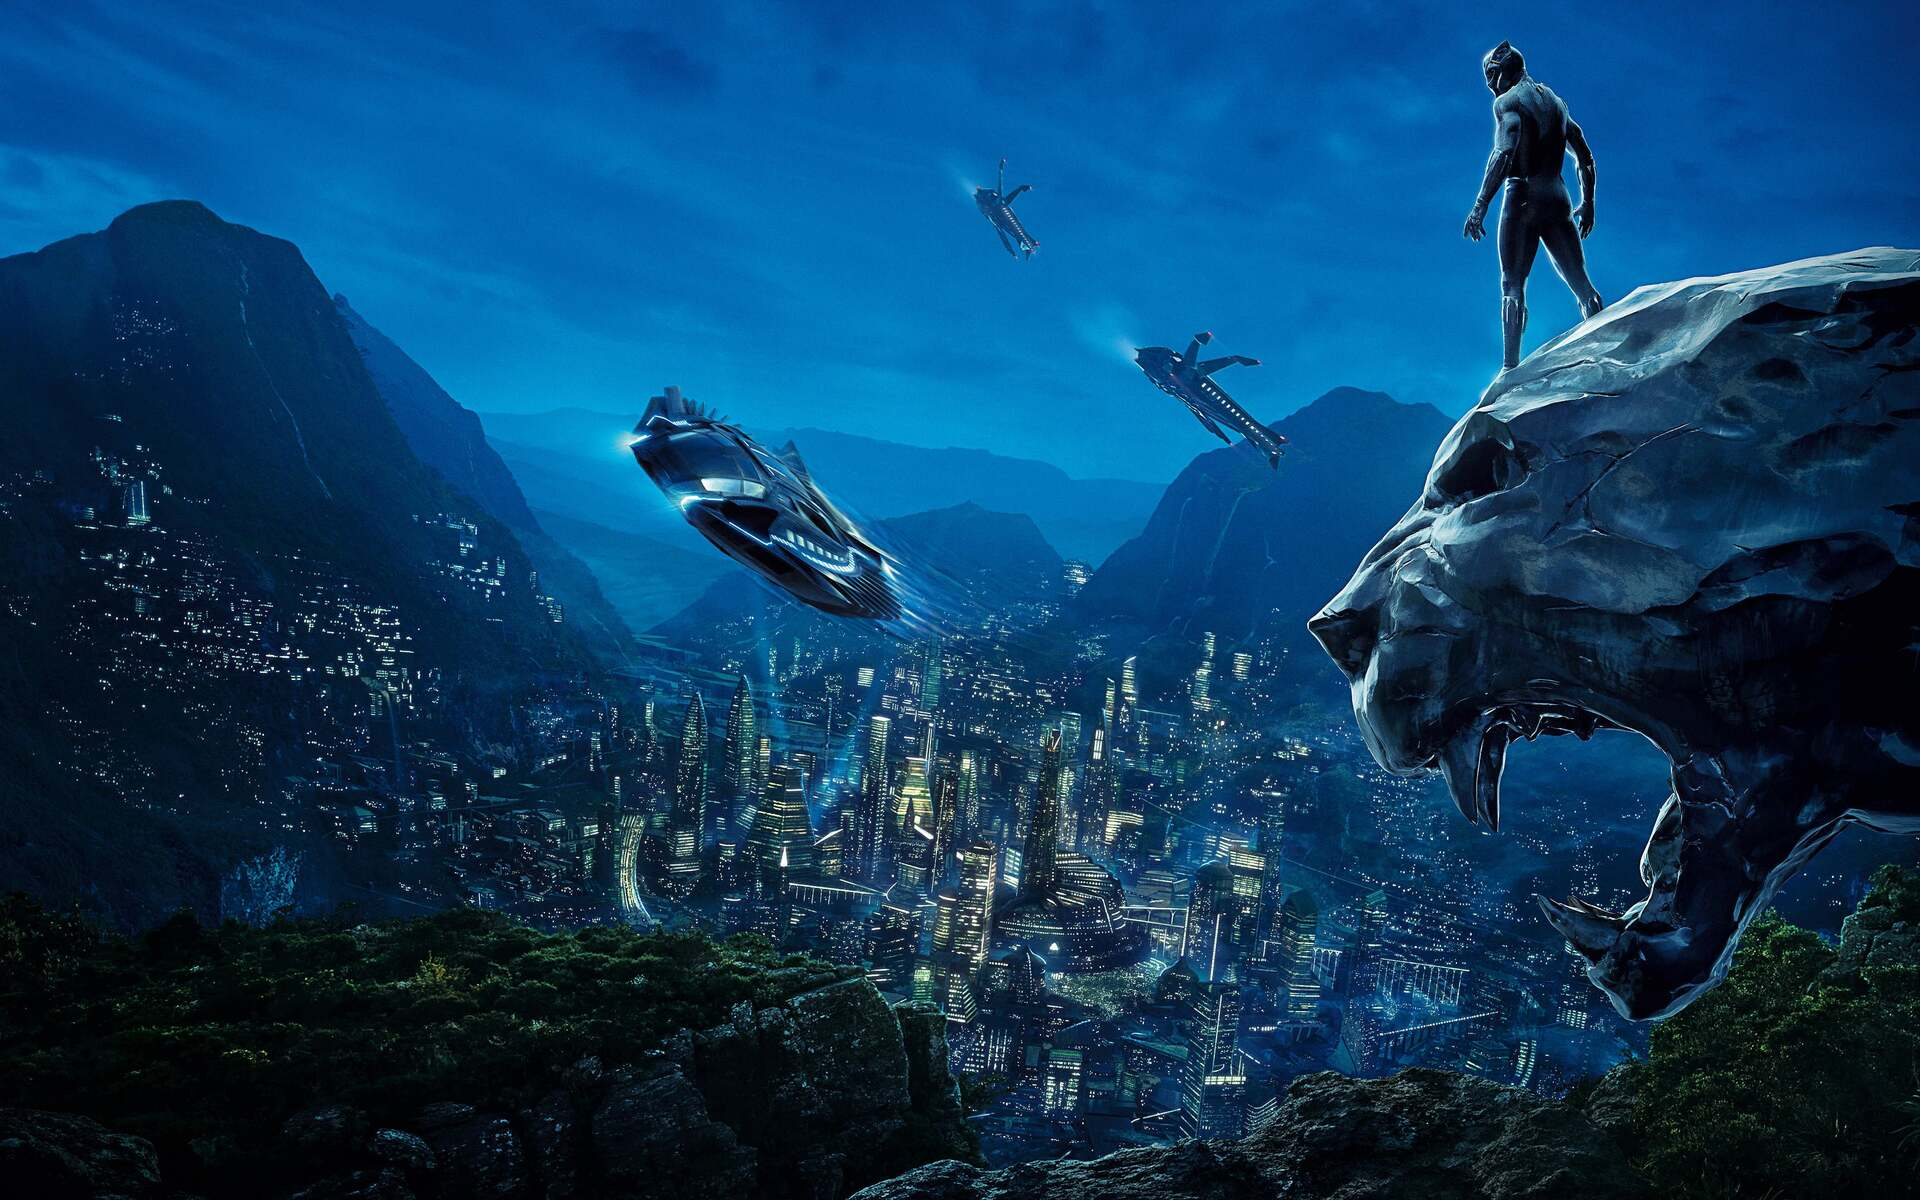 1920x1200 black panther 4k movie poster 1080p resolution hd 4k